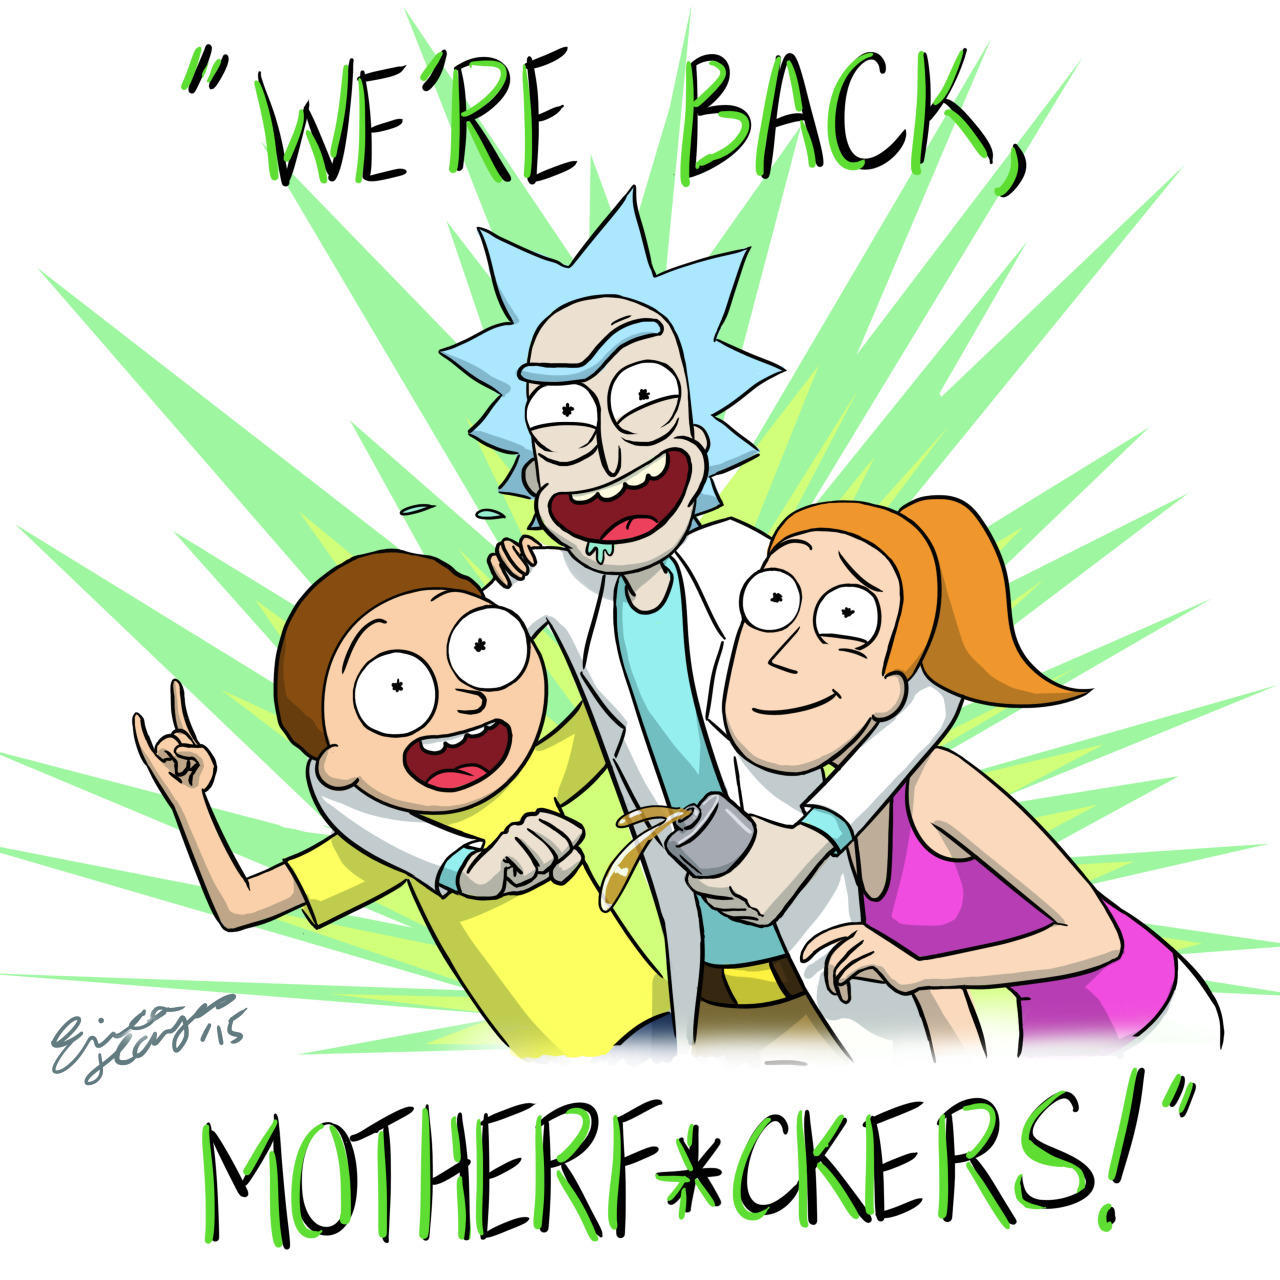 We're Back! | Rick and... Spongebob Excited Face